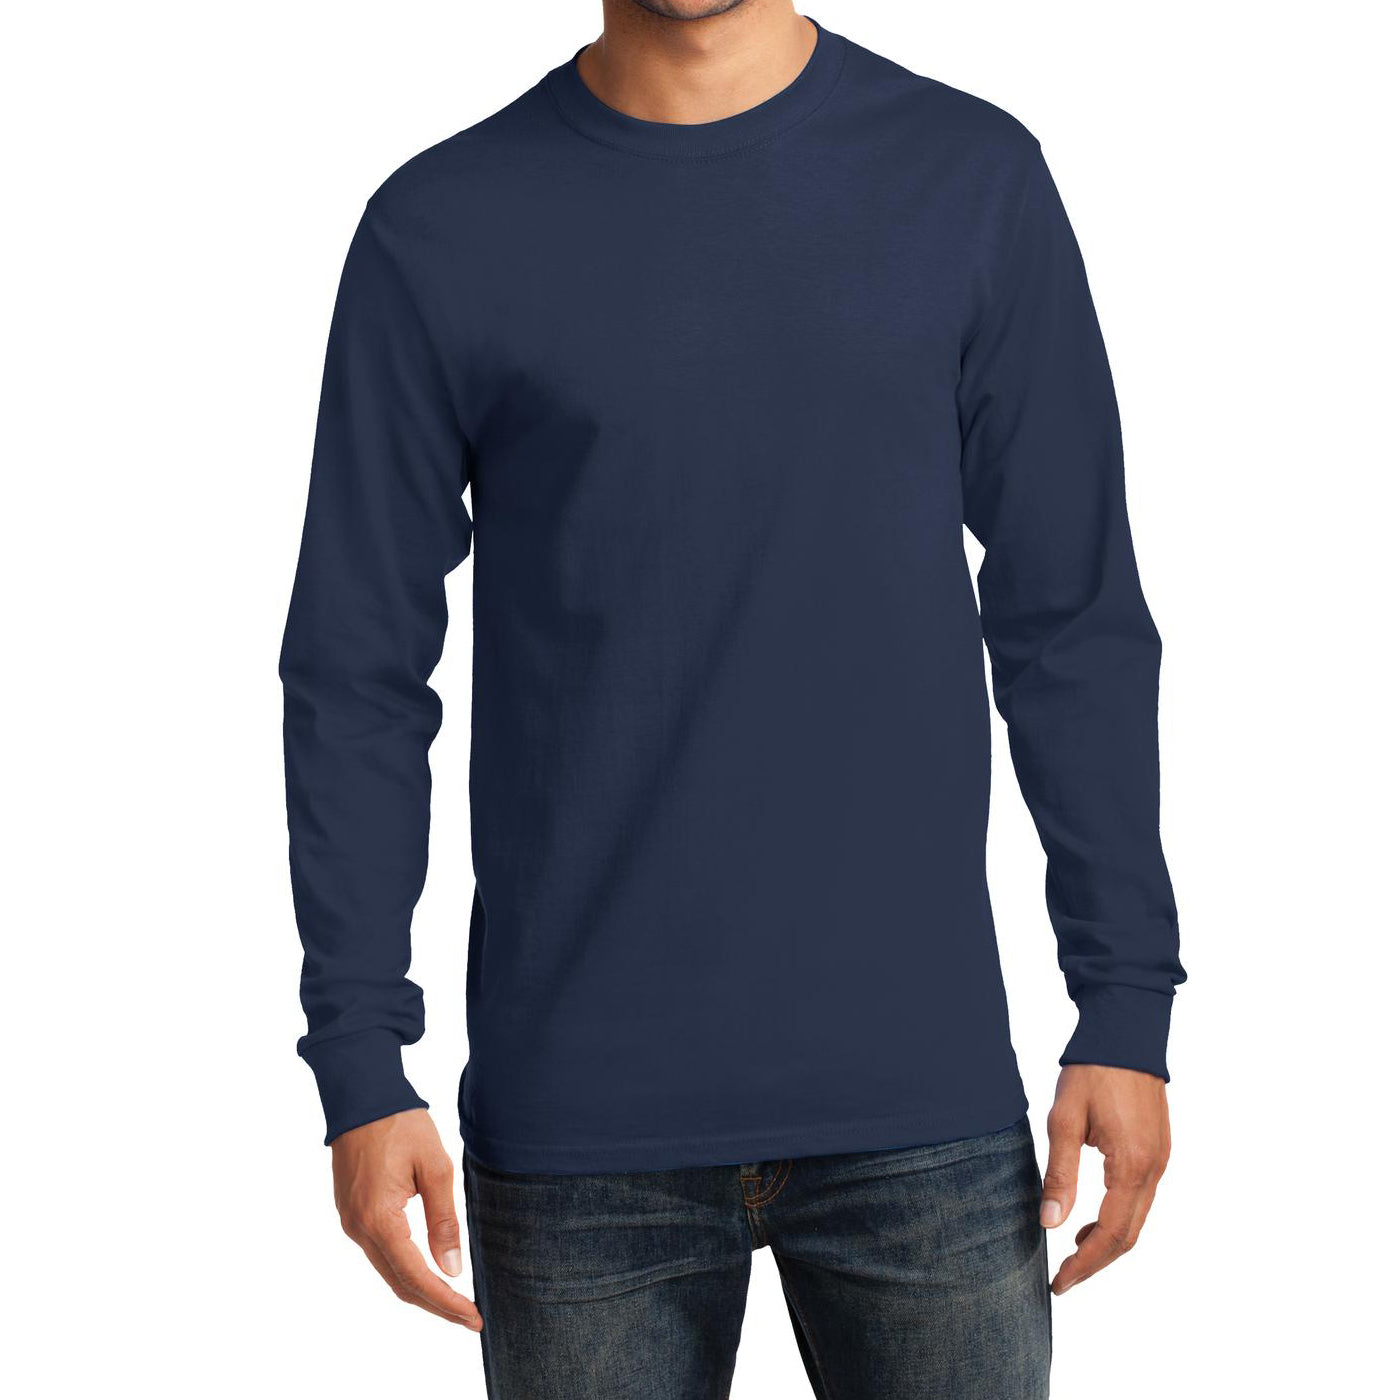 Men's Long Sleeve Essential Tee - Navy - Front